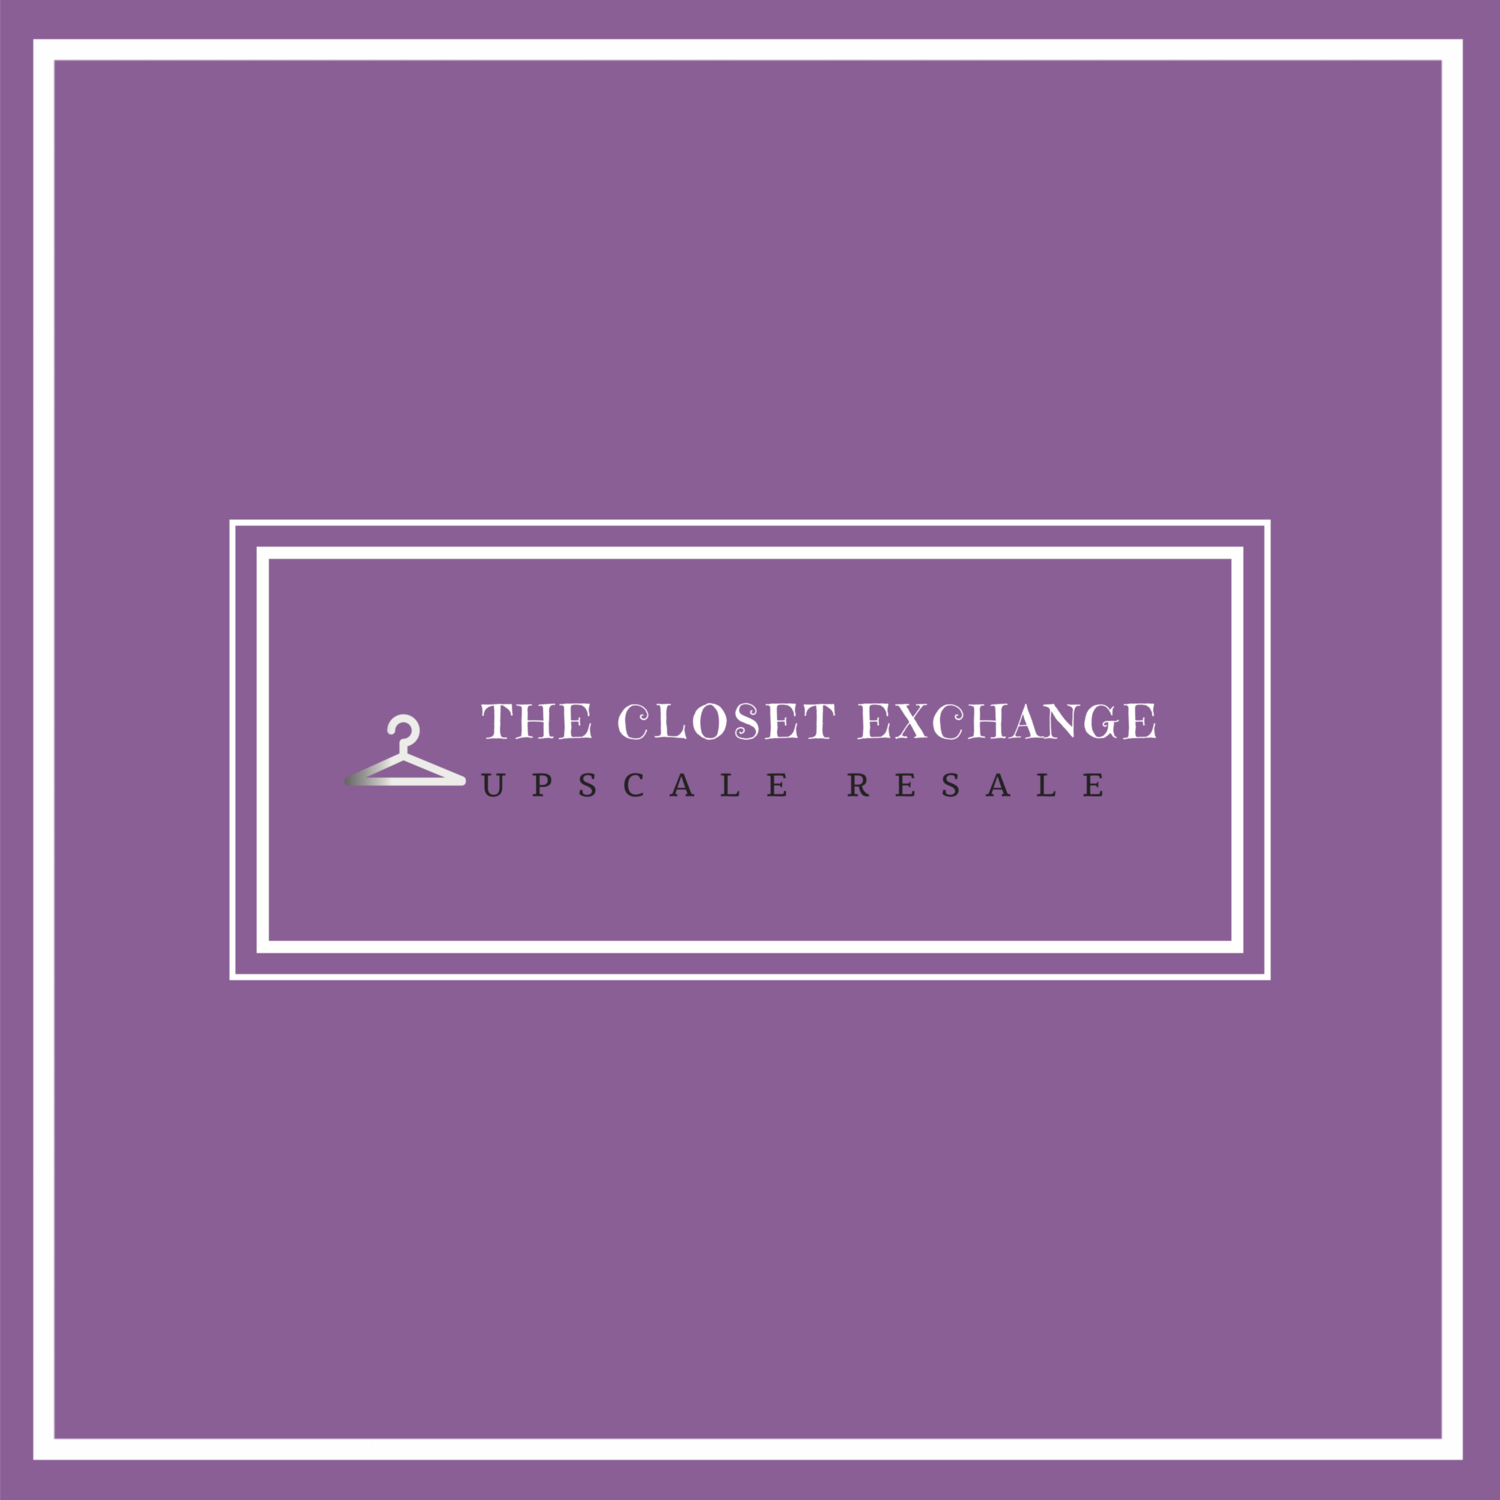 The Closet Exchange